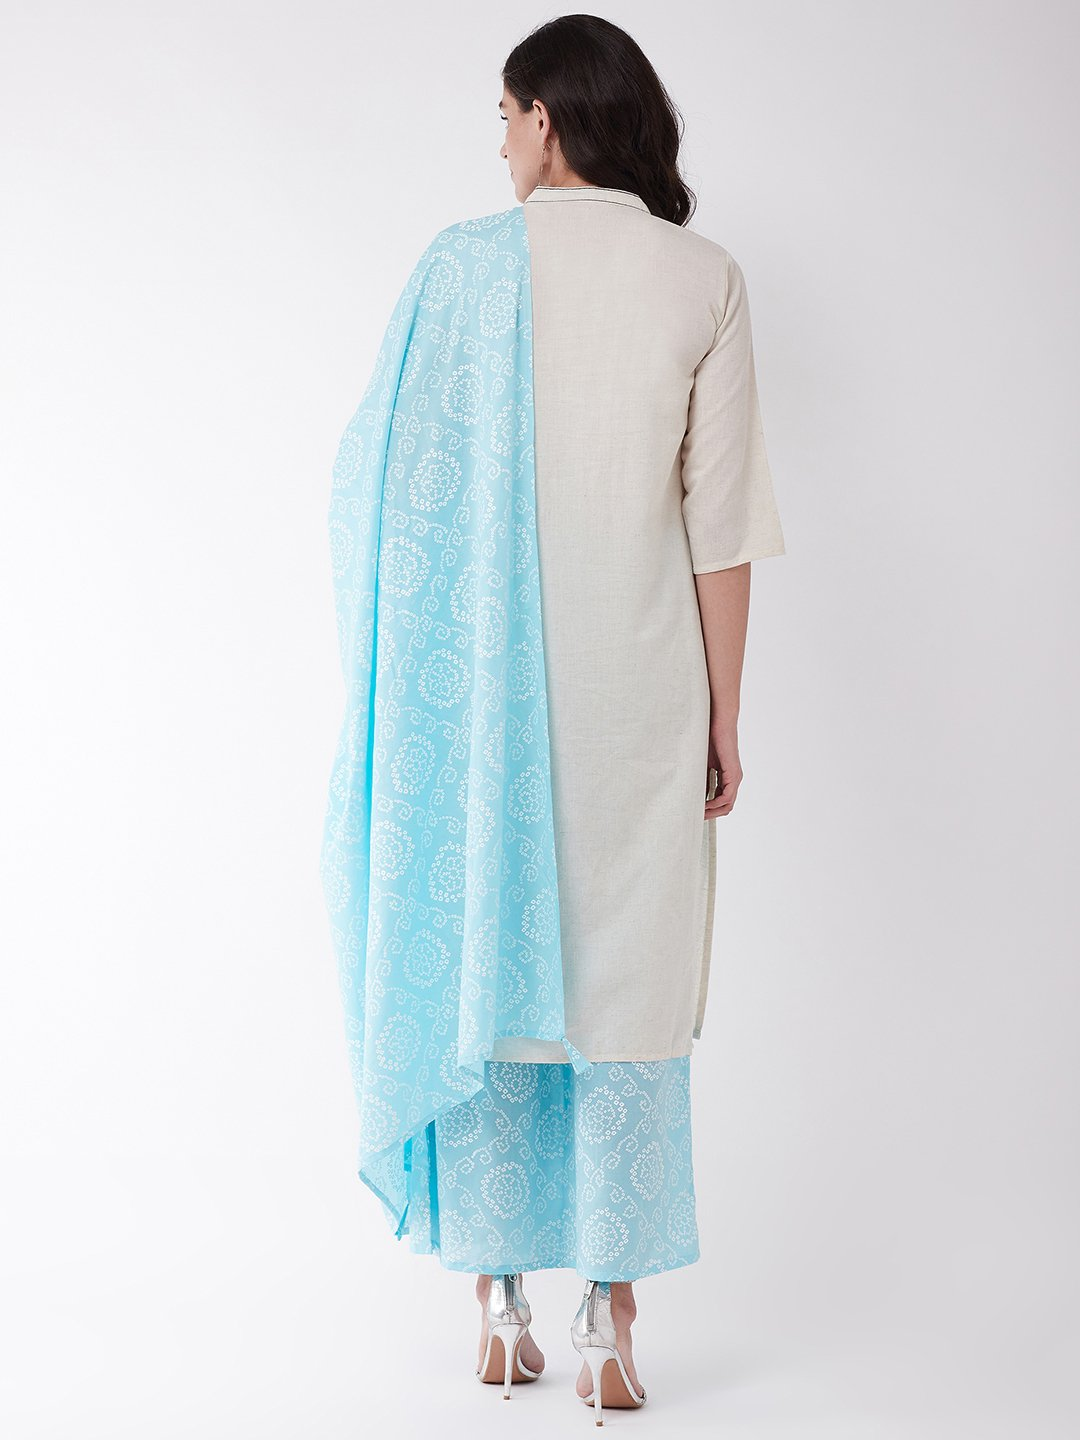 Off White And Light Blue Bandhej Kurta Set